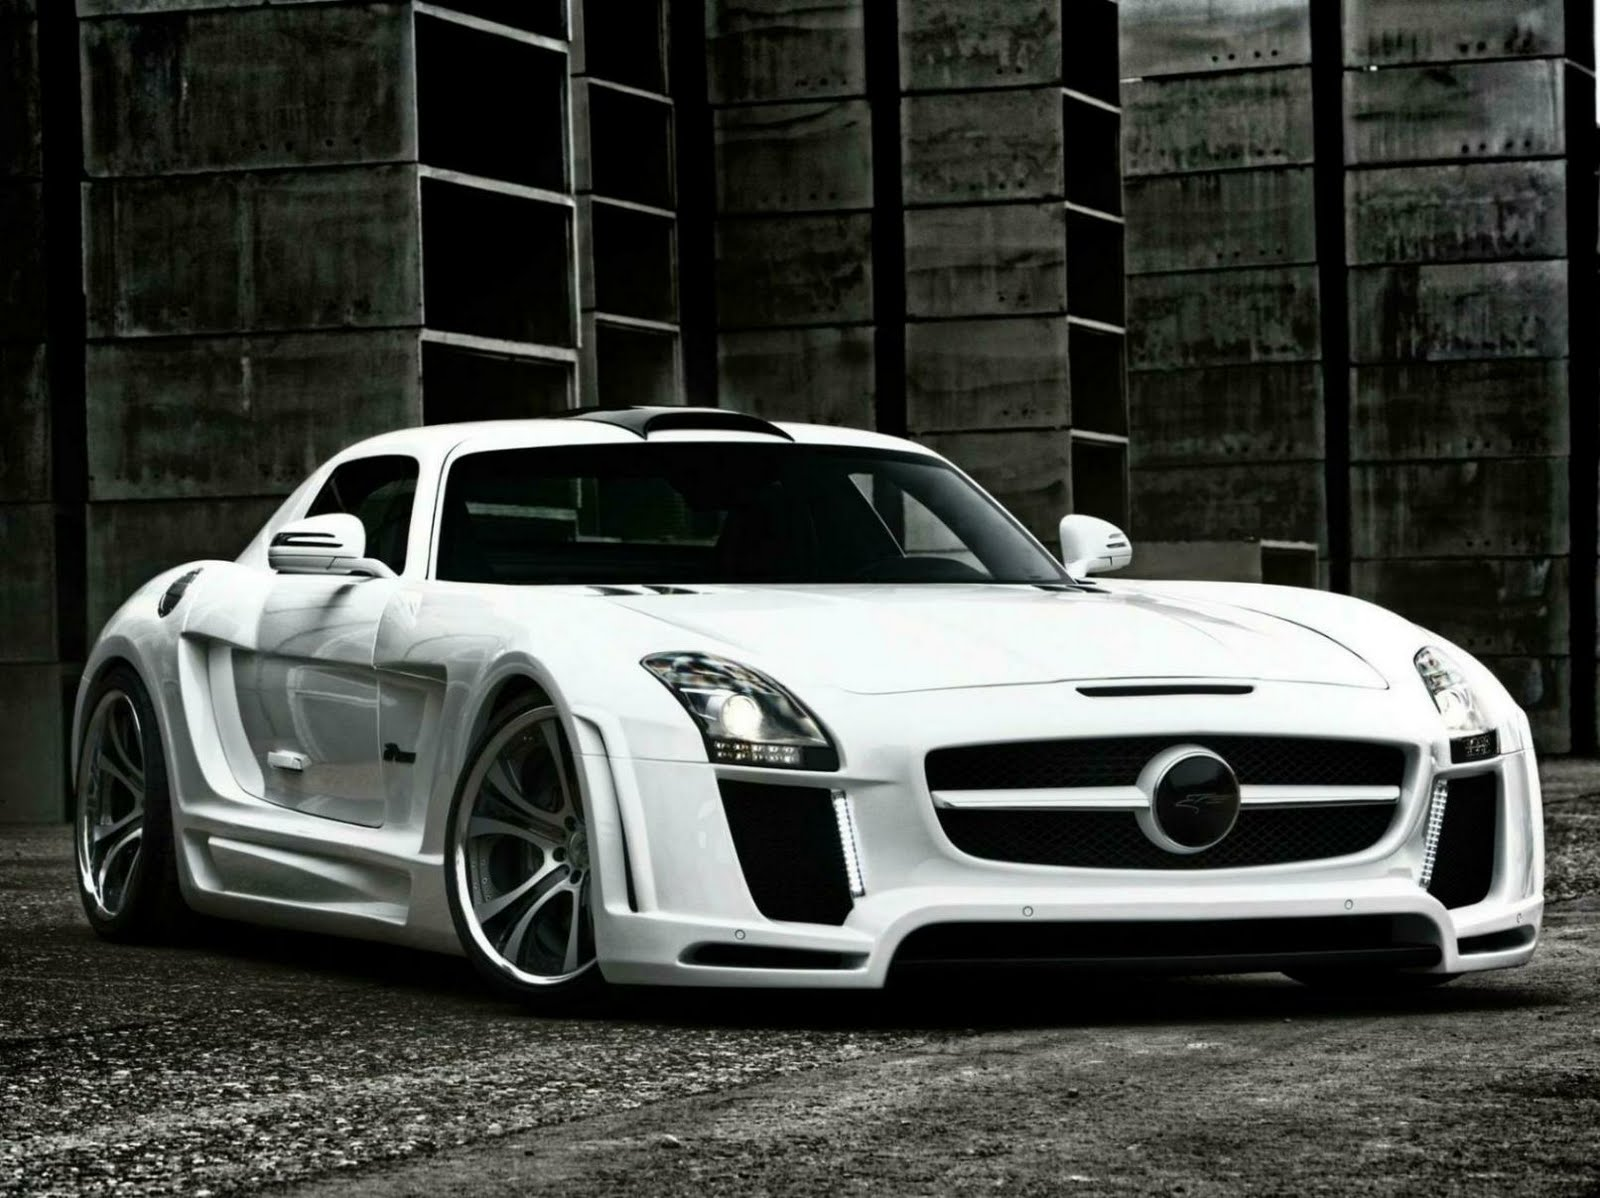 White Mercedes Benz Supercar Tuning Full HD Wallpaper